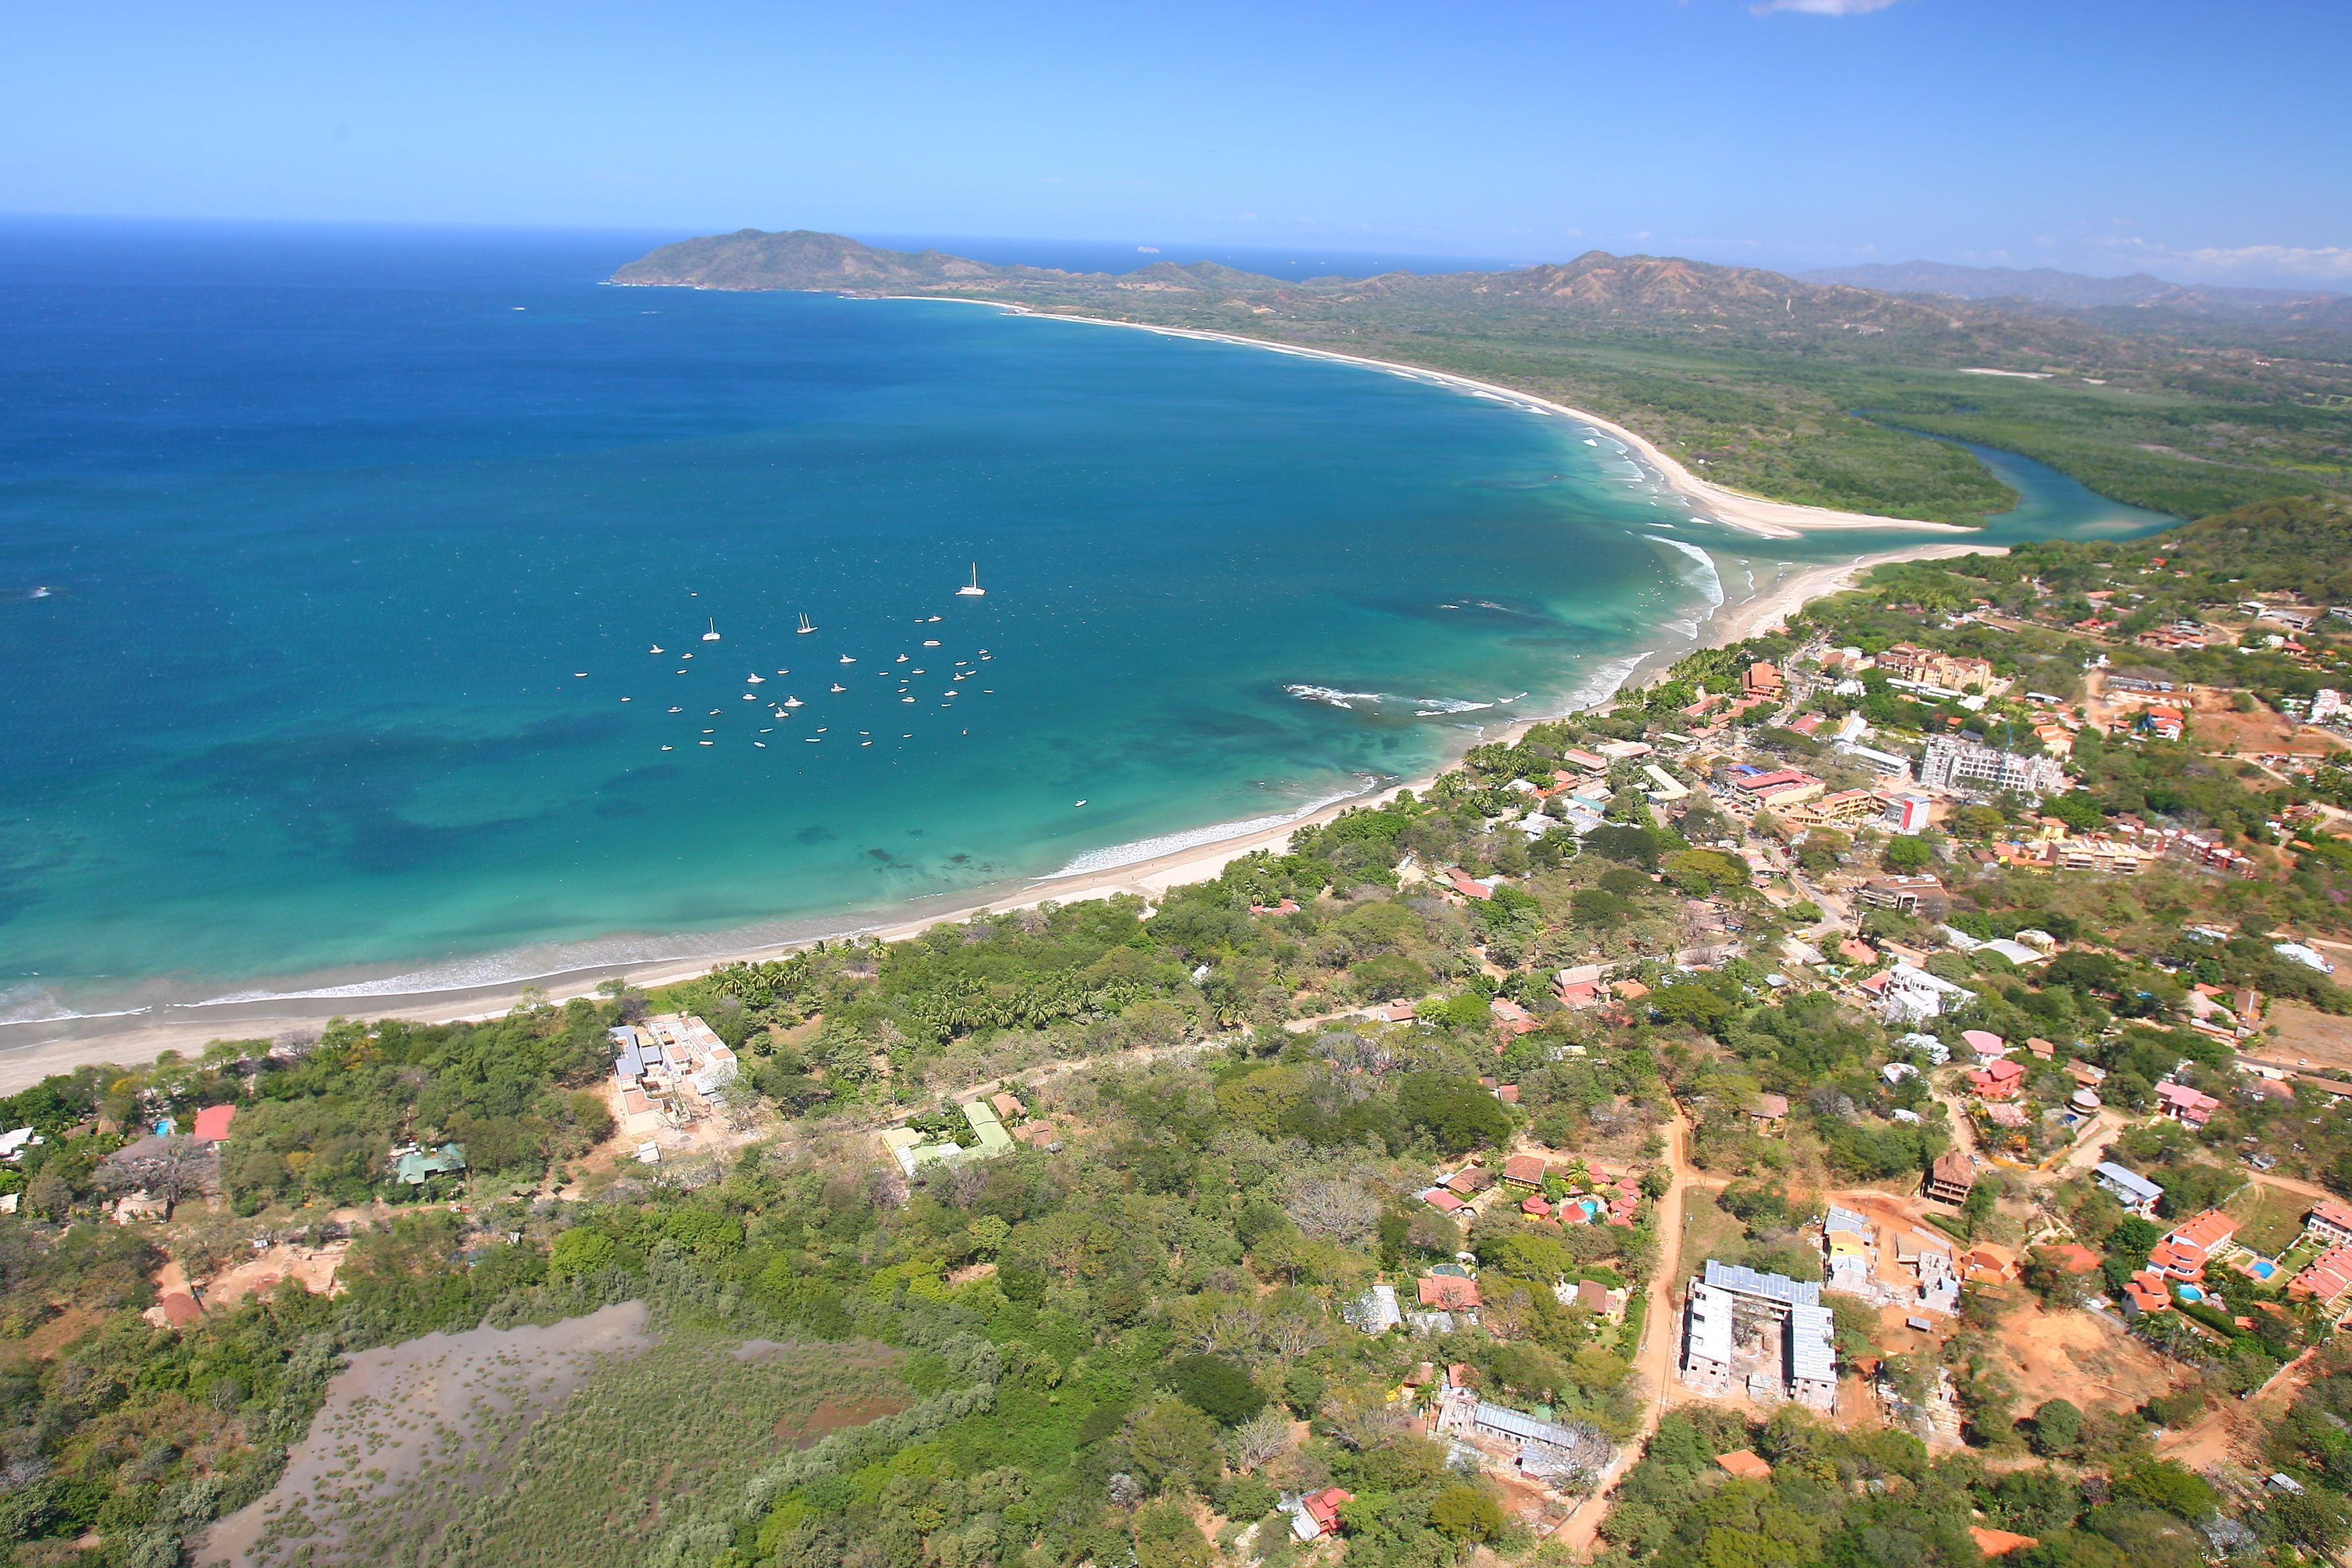 File:Costa Rica Playa Tamarindo and Grande 2007 aerial photograph ... my favorite beach destination